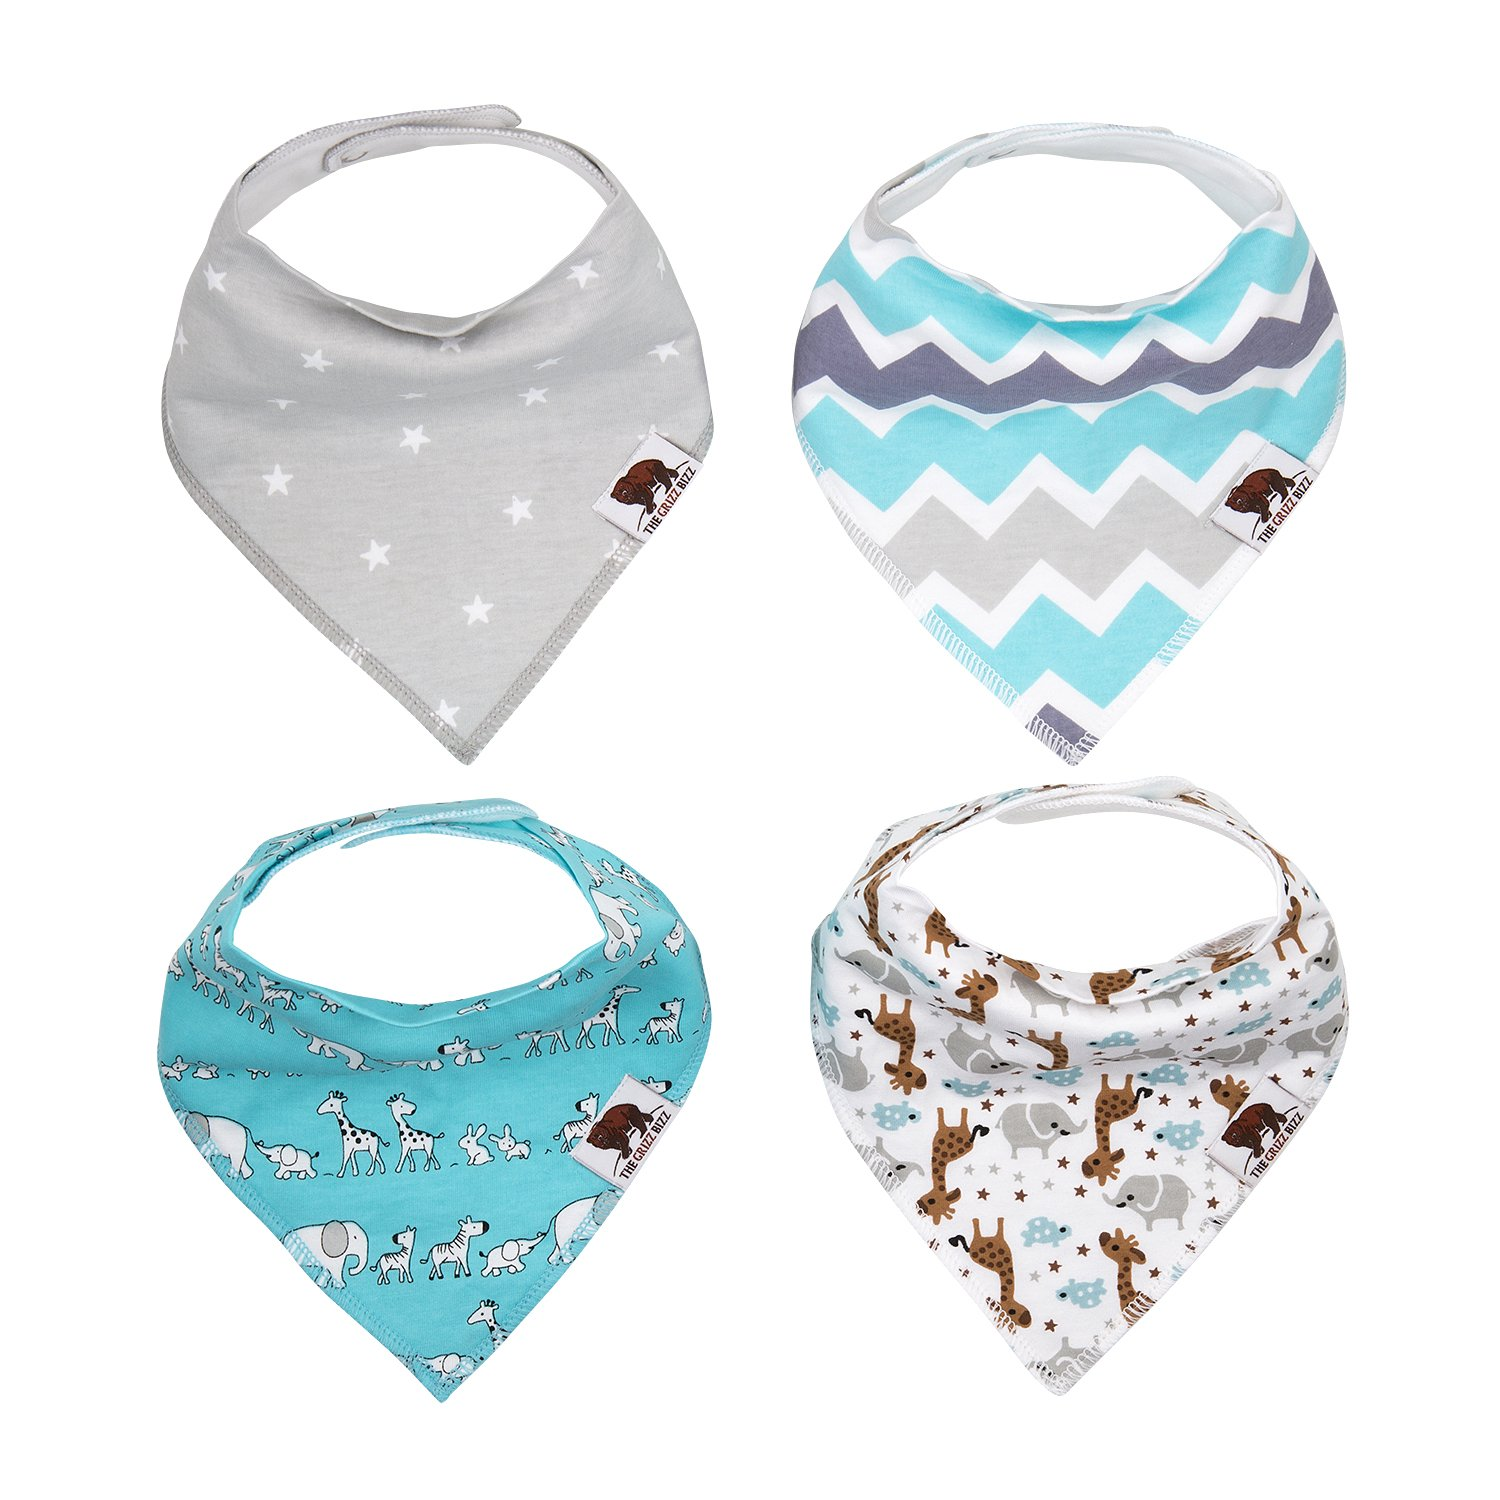 The Grizz Bizz Baby Organic Cotton Drool Bibs, (Pack of 4) - Neutral Pattern + Animal